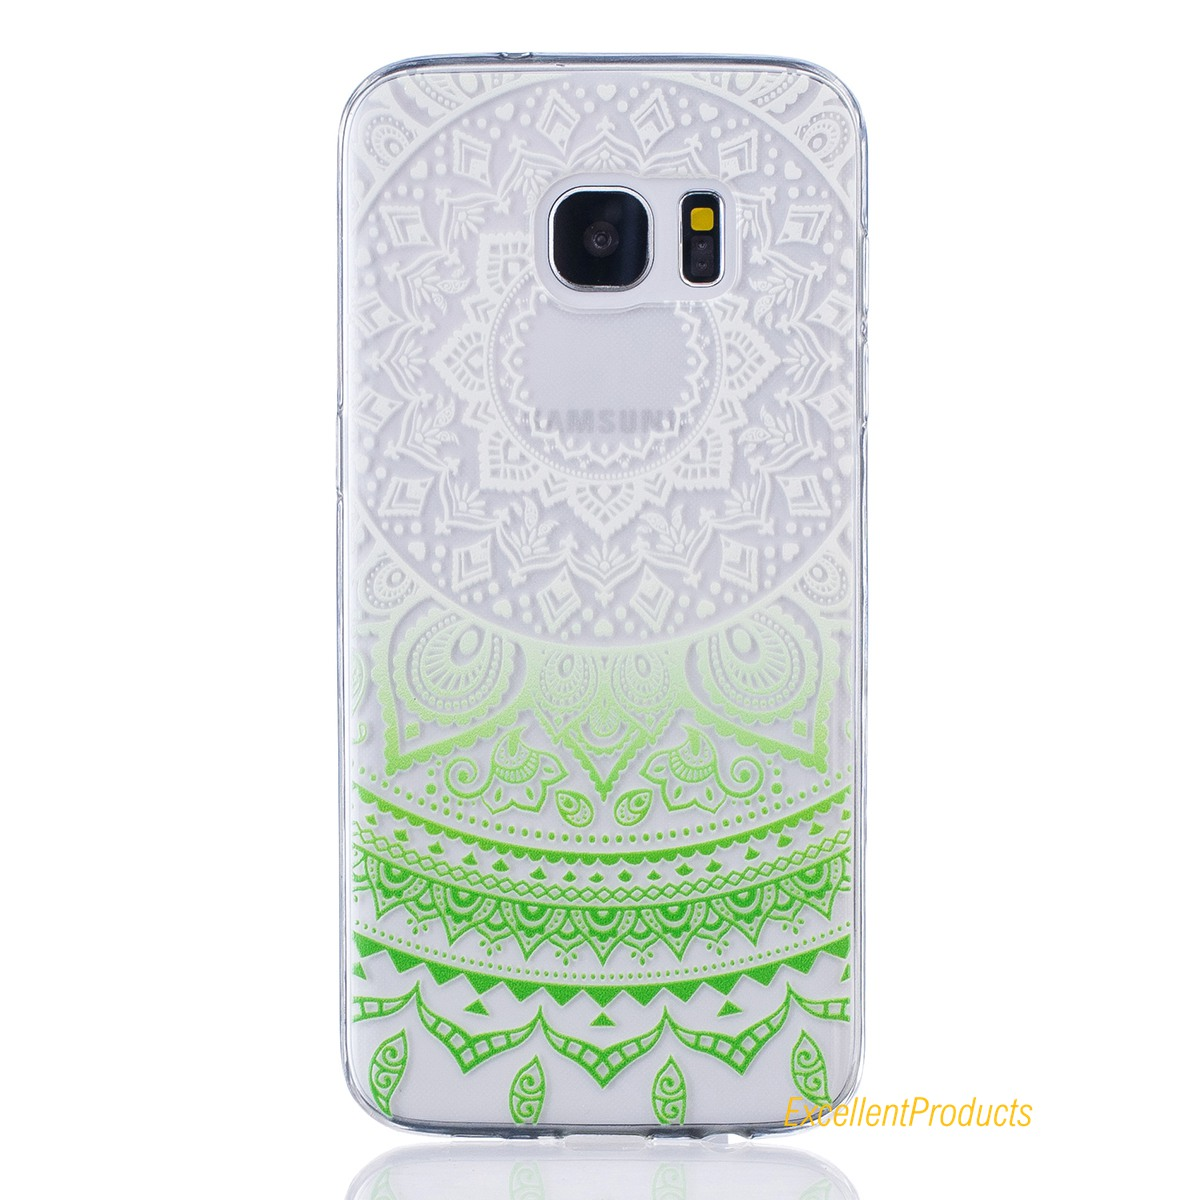 For Samsung S7 EDGE Case Soft Silicone TPU Fashion Design Pattern Back Cover For samsung s 7 edge Cases Hot Selling